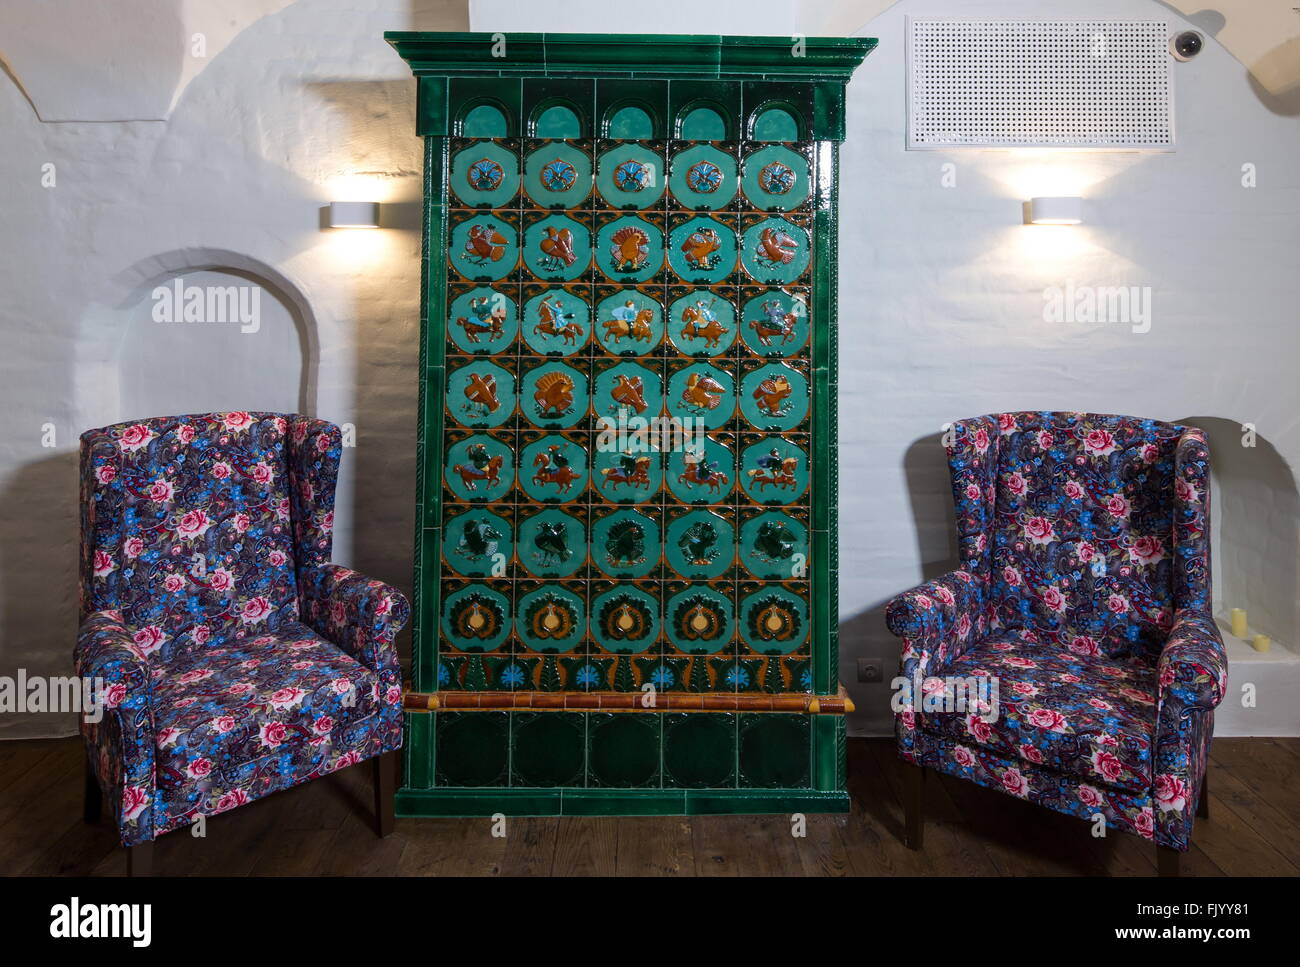 Moscow, Russia. 4th Mar, 2016. A tiled stove in the Aragvi restaurant at Tverskaya Street. The Aragvi restaurant - Stock Image